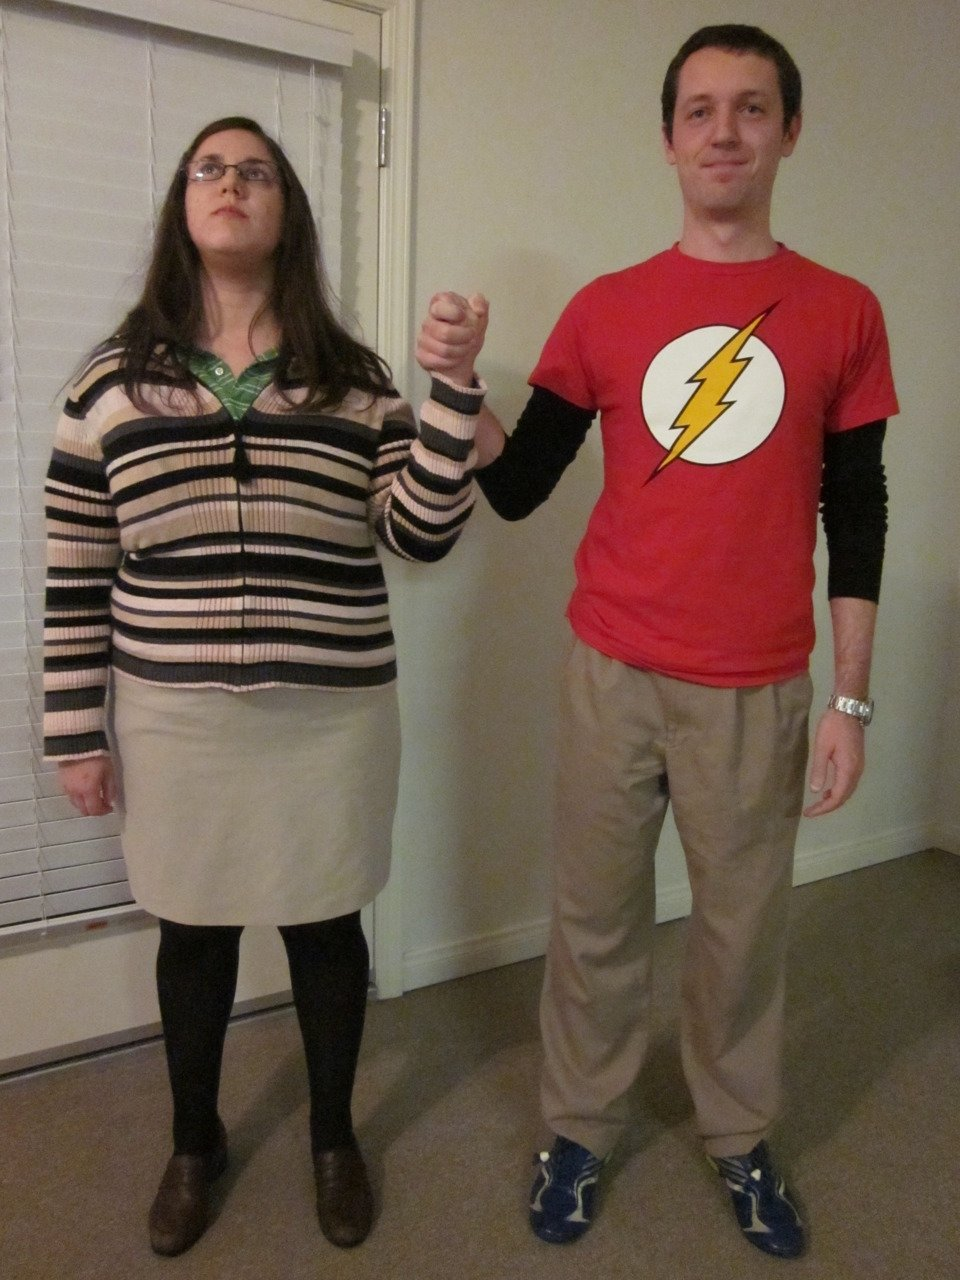 10 Lovable Funny Ideas For Halloween Costumes sheldon and amy costume totally want to do this cosplay 2020